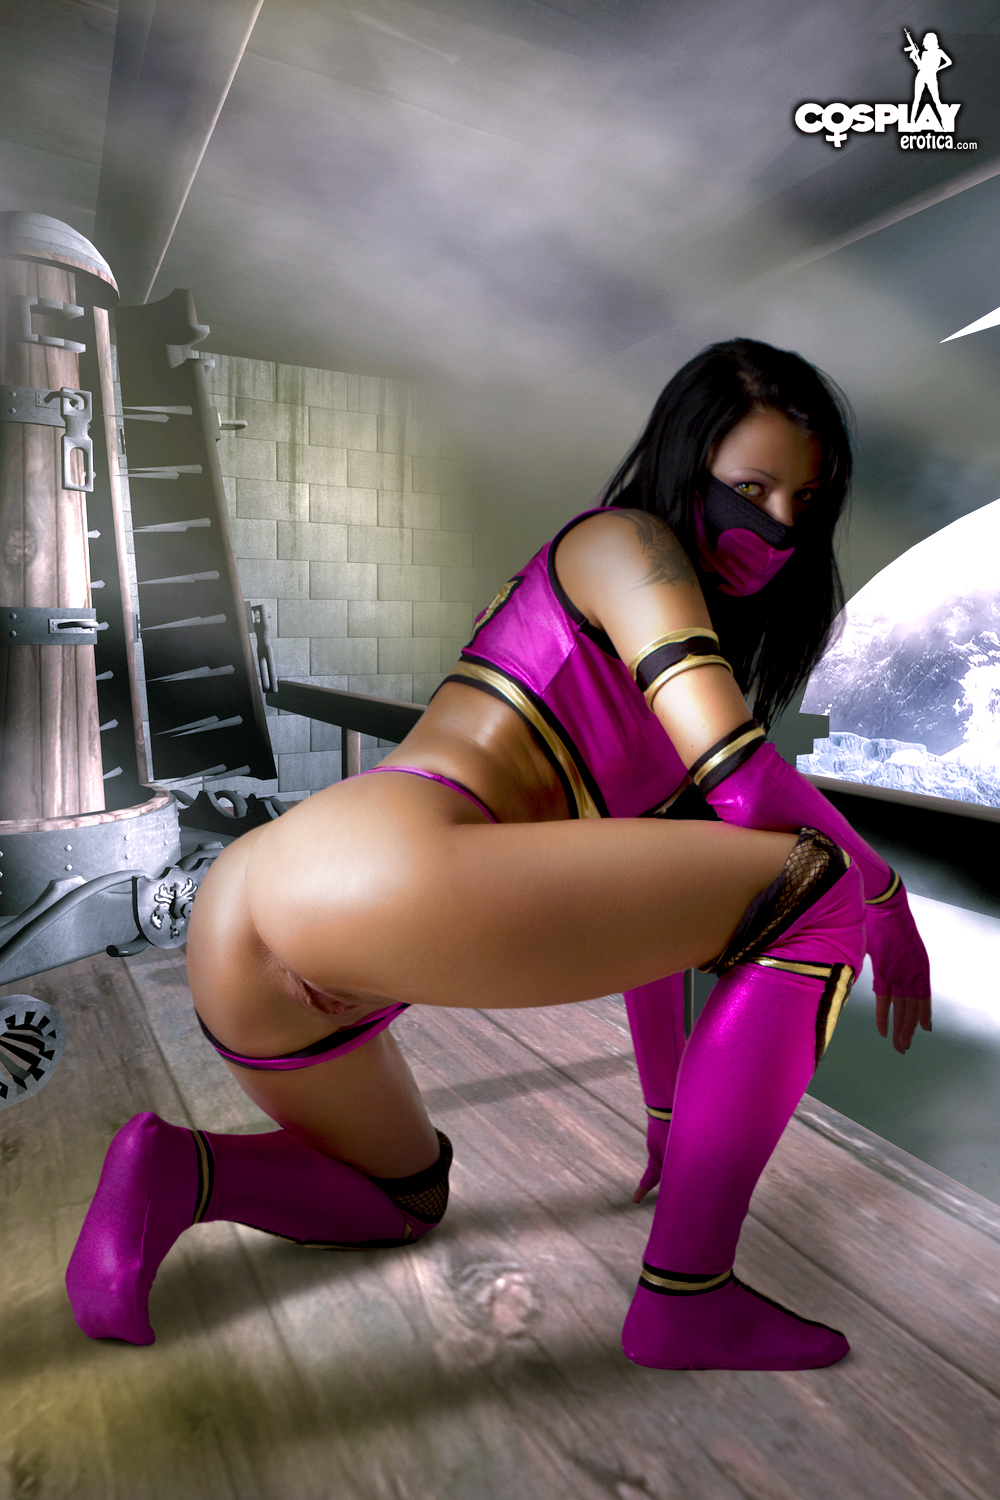 Mortal kombat milenna sex naked comic